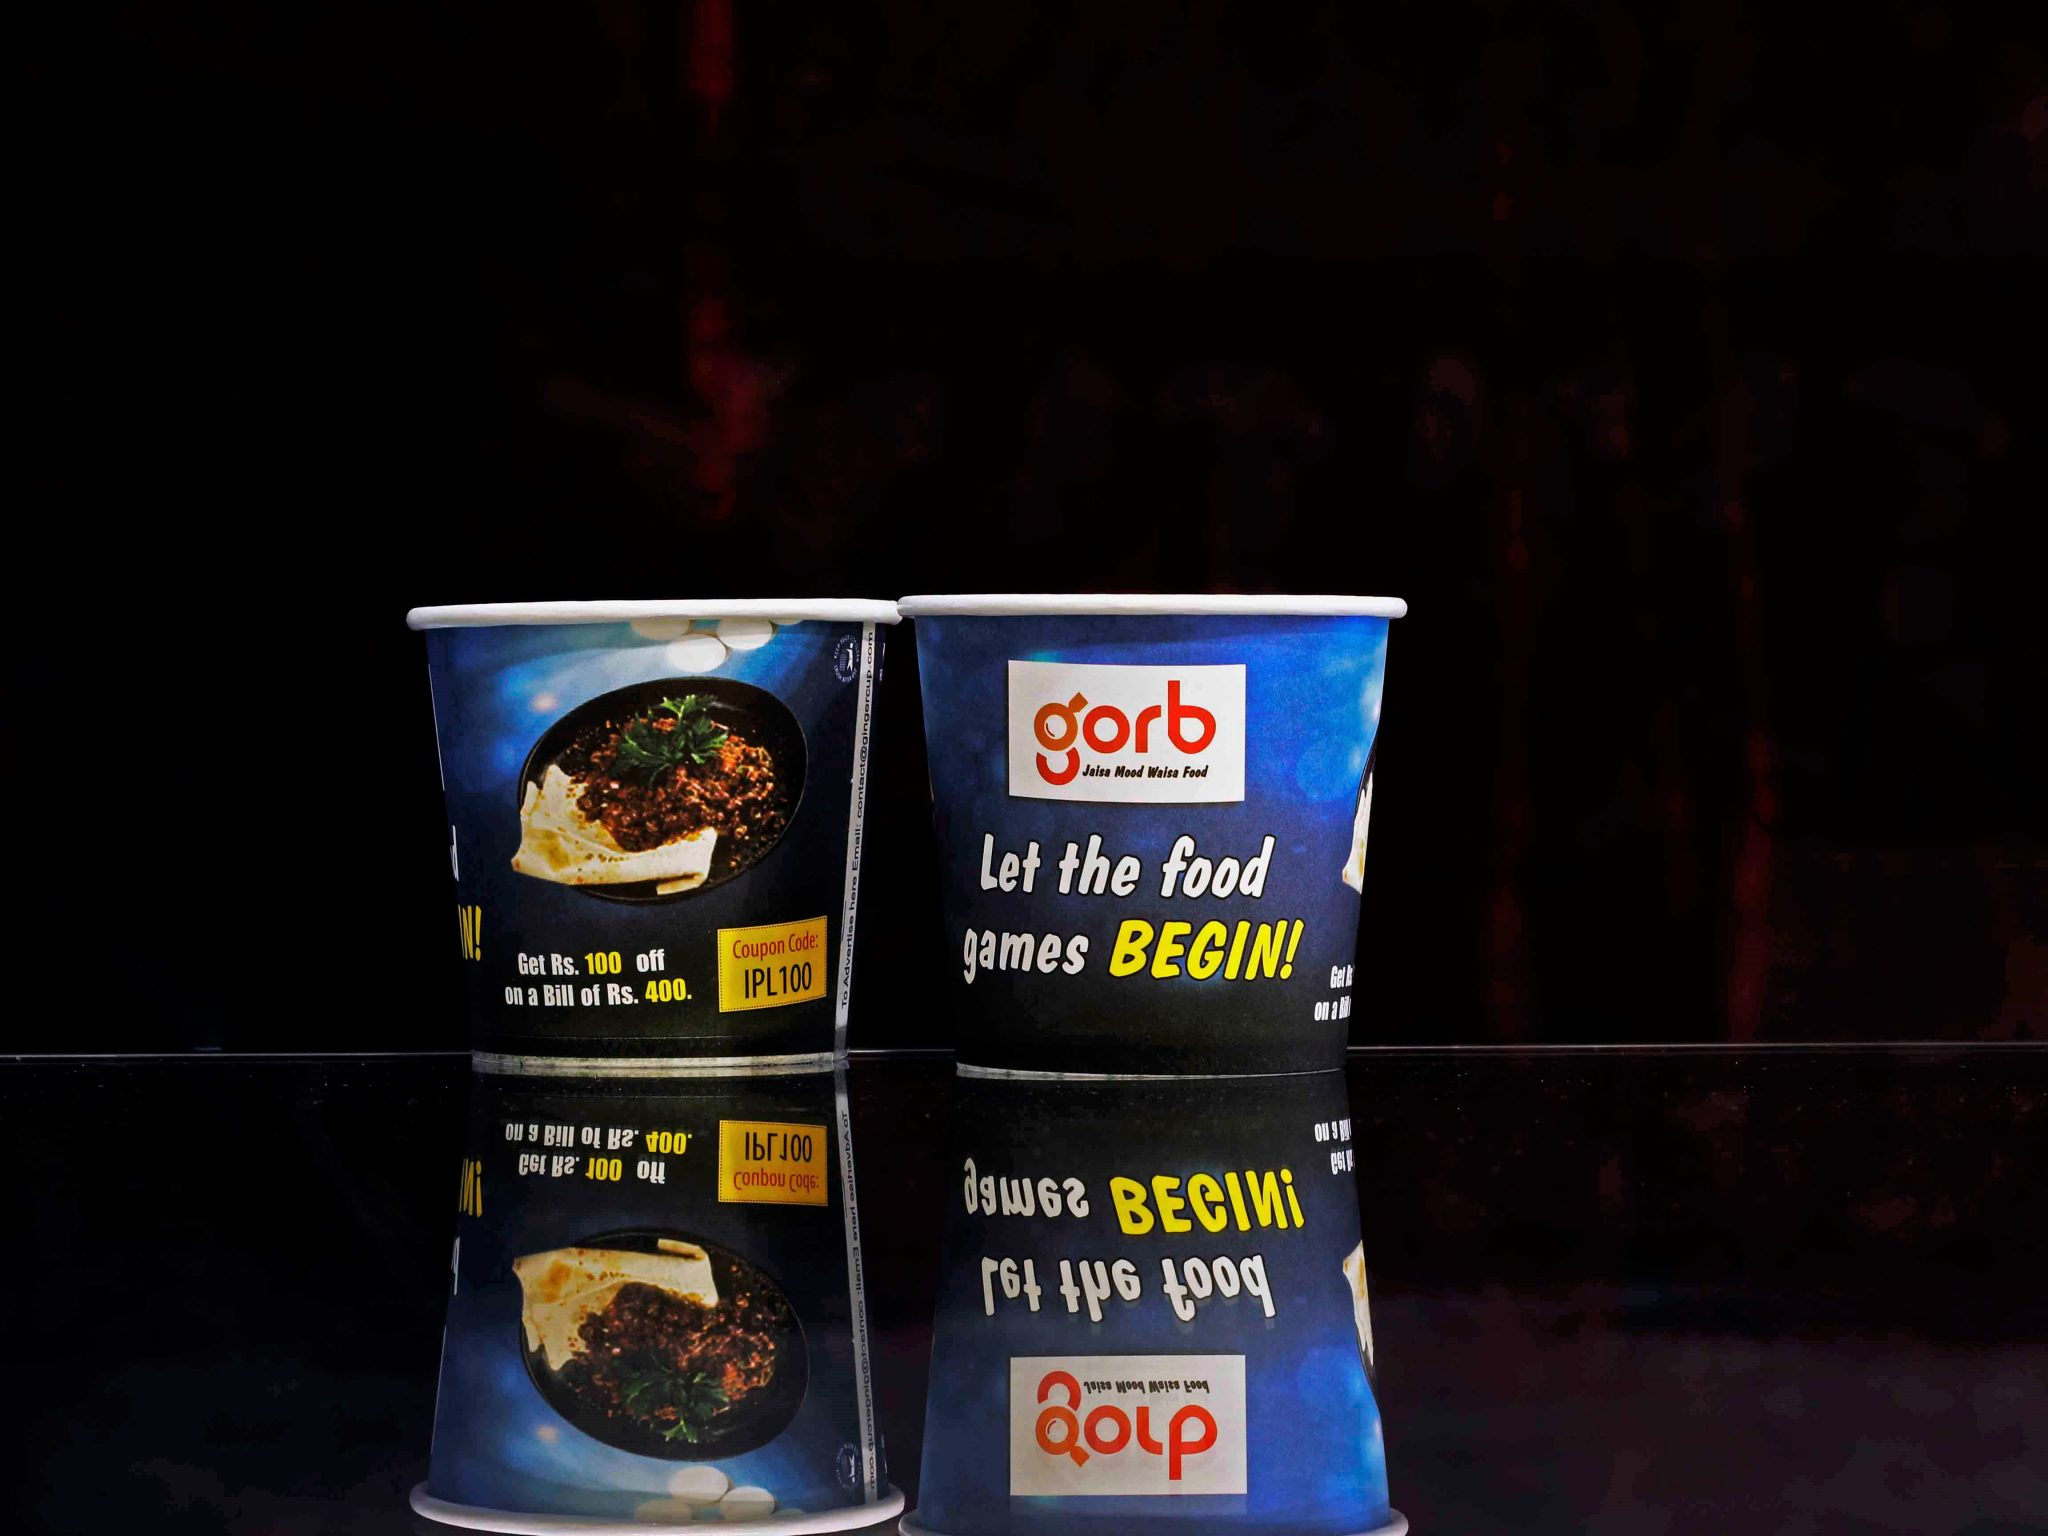 paper cup advertising for gorb